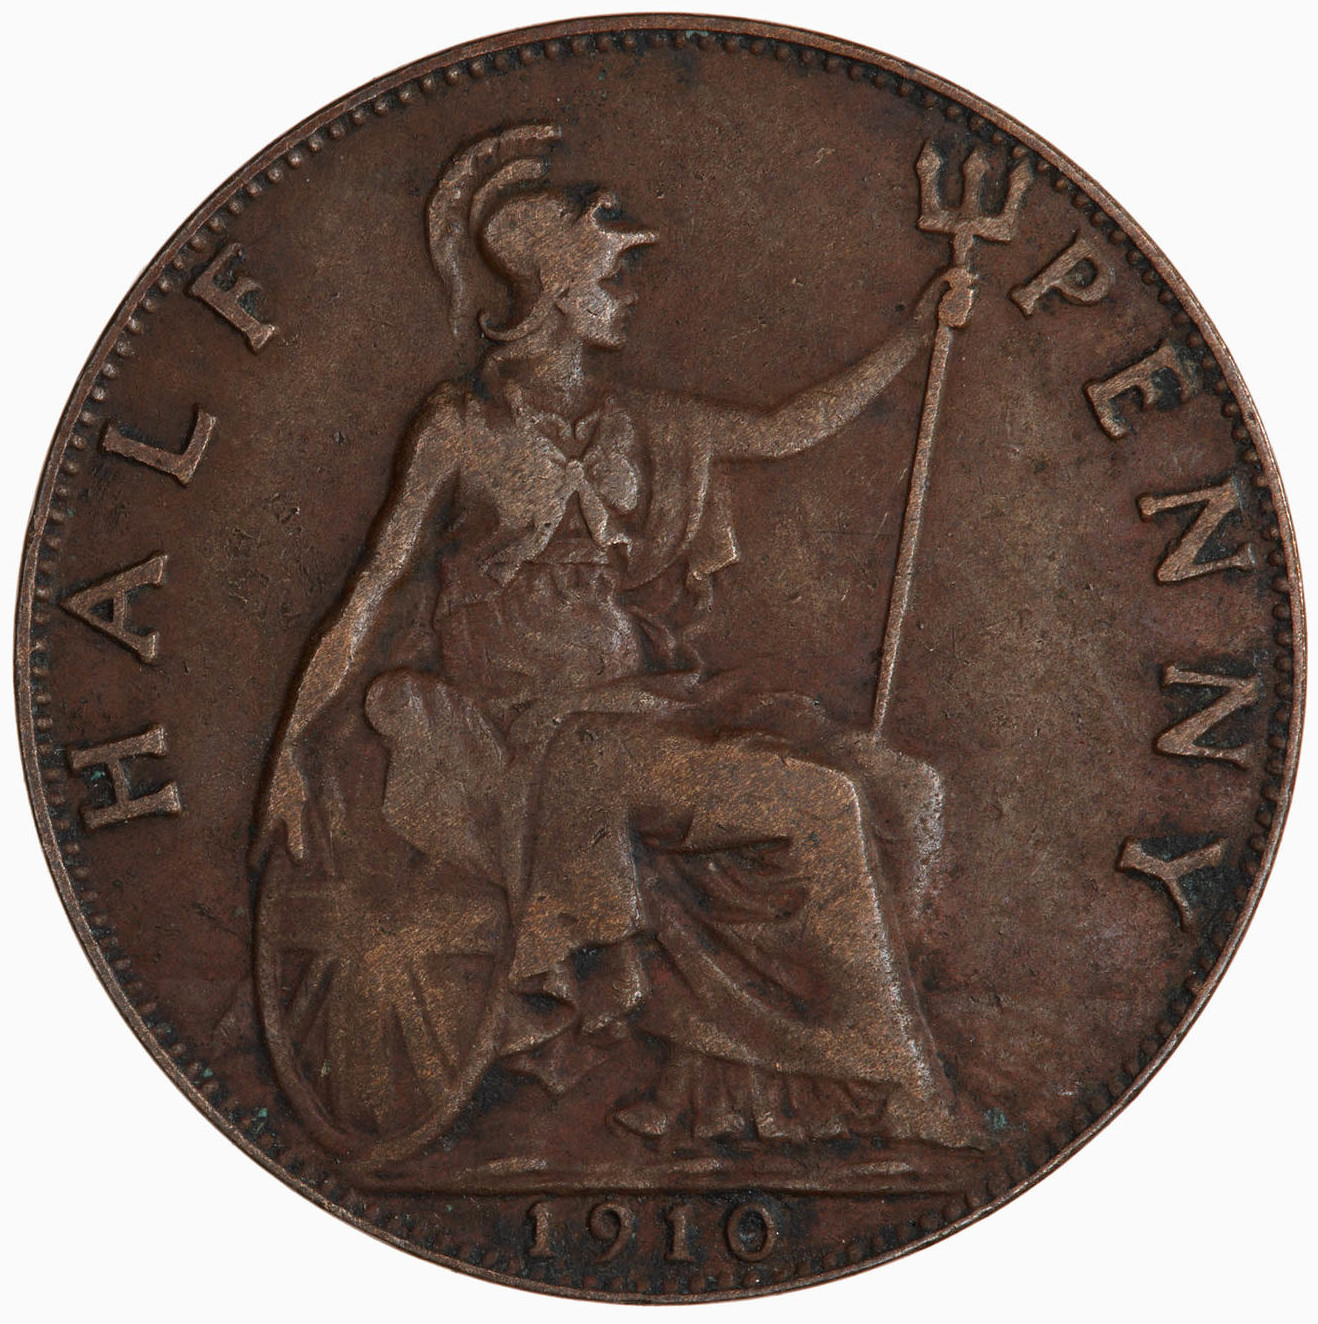 Halfpenny 1910: Photo Coin - Halfpenny, Edward VII, Great Britain, 1910